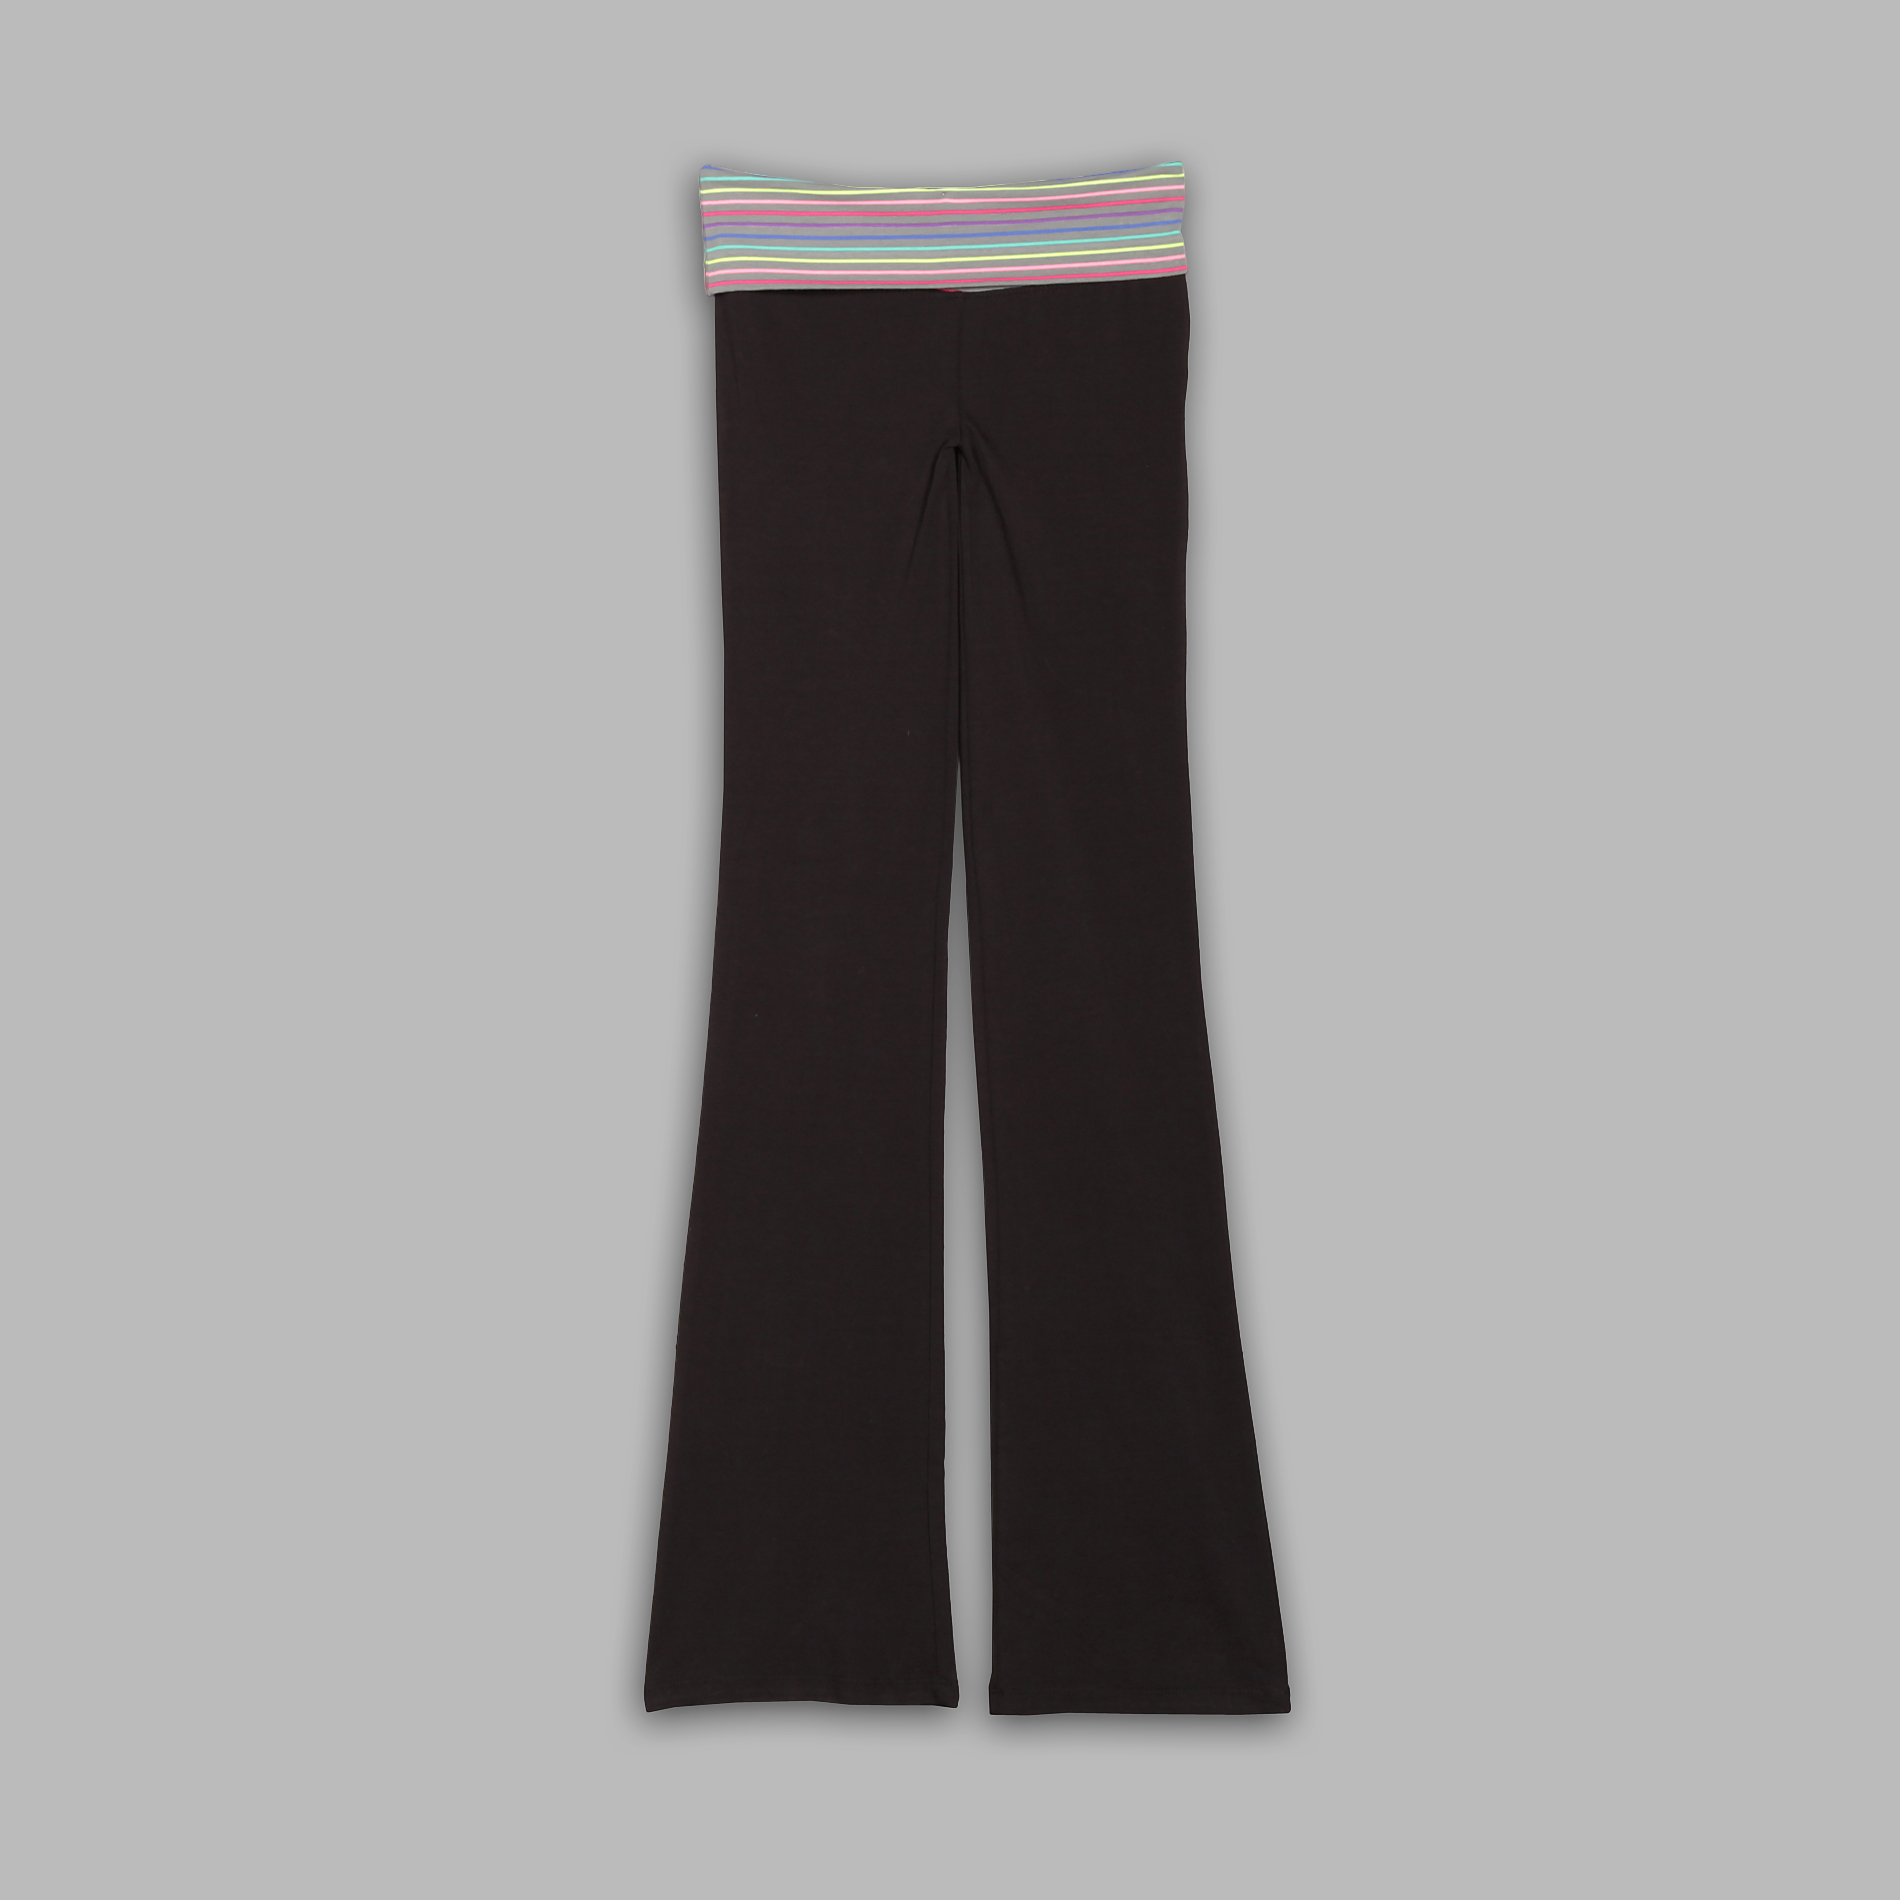 Joe Boxer Women's 'Stripey Stripe' Yoga Pants at Kmart.com